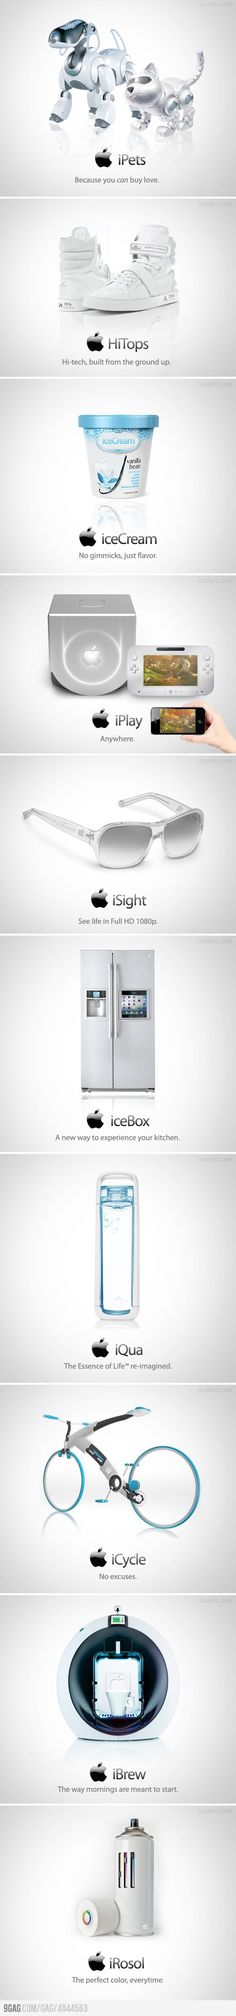 10 Possible Future Apple Products